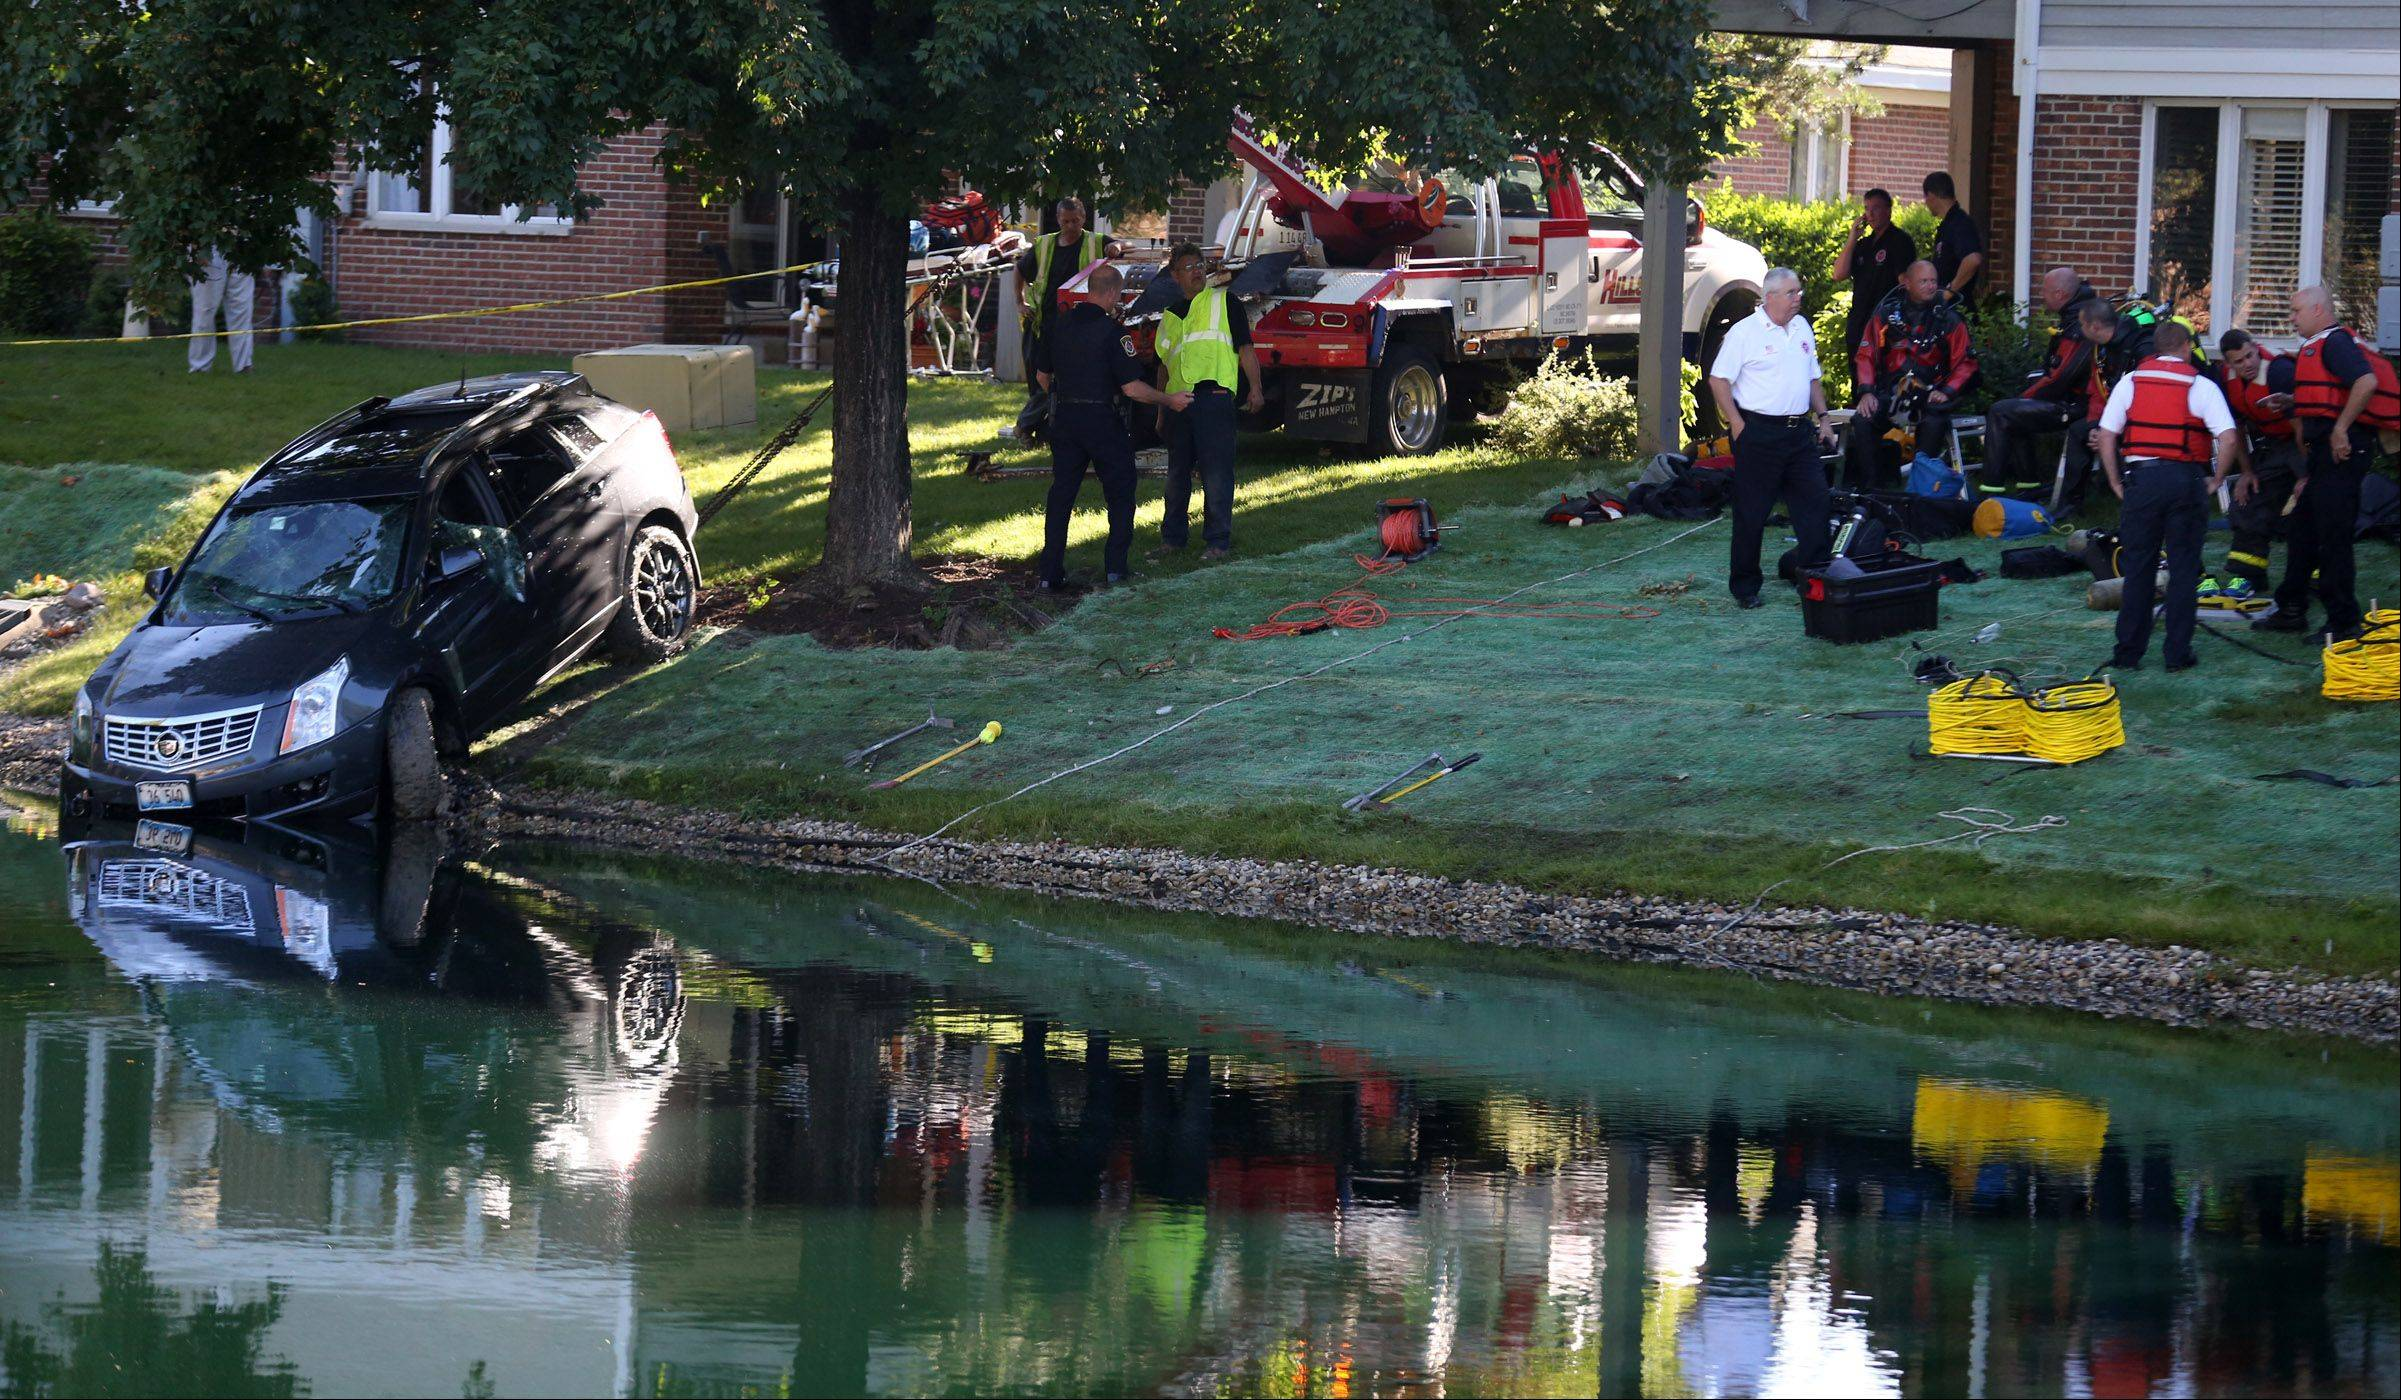 A man was pulled from a vehicle in a pond Thursday morning in the 1500 block of Courtland Drive in Arlington Heights.